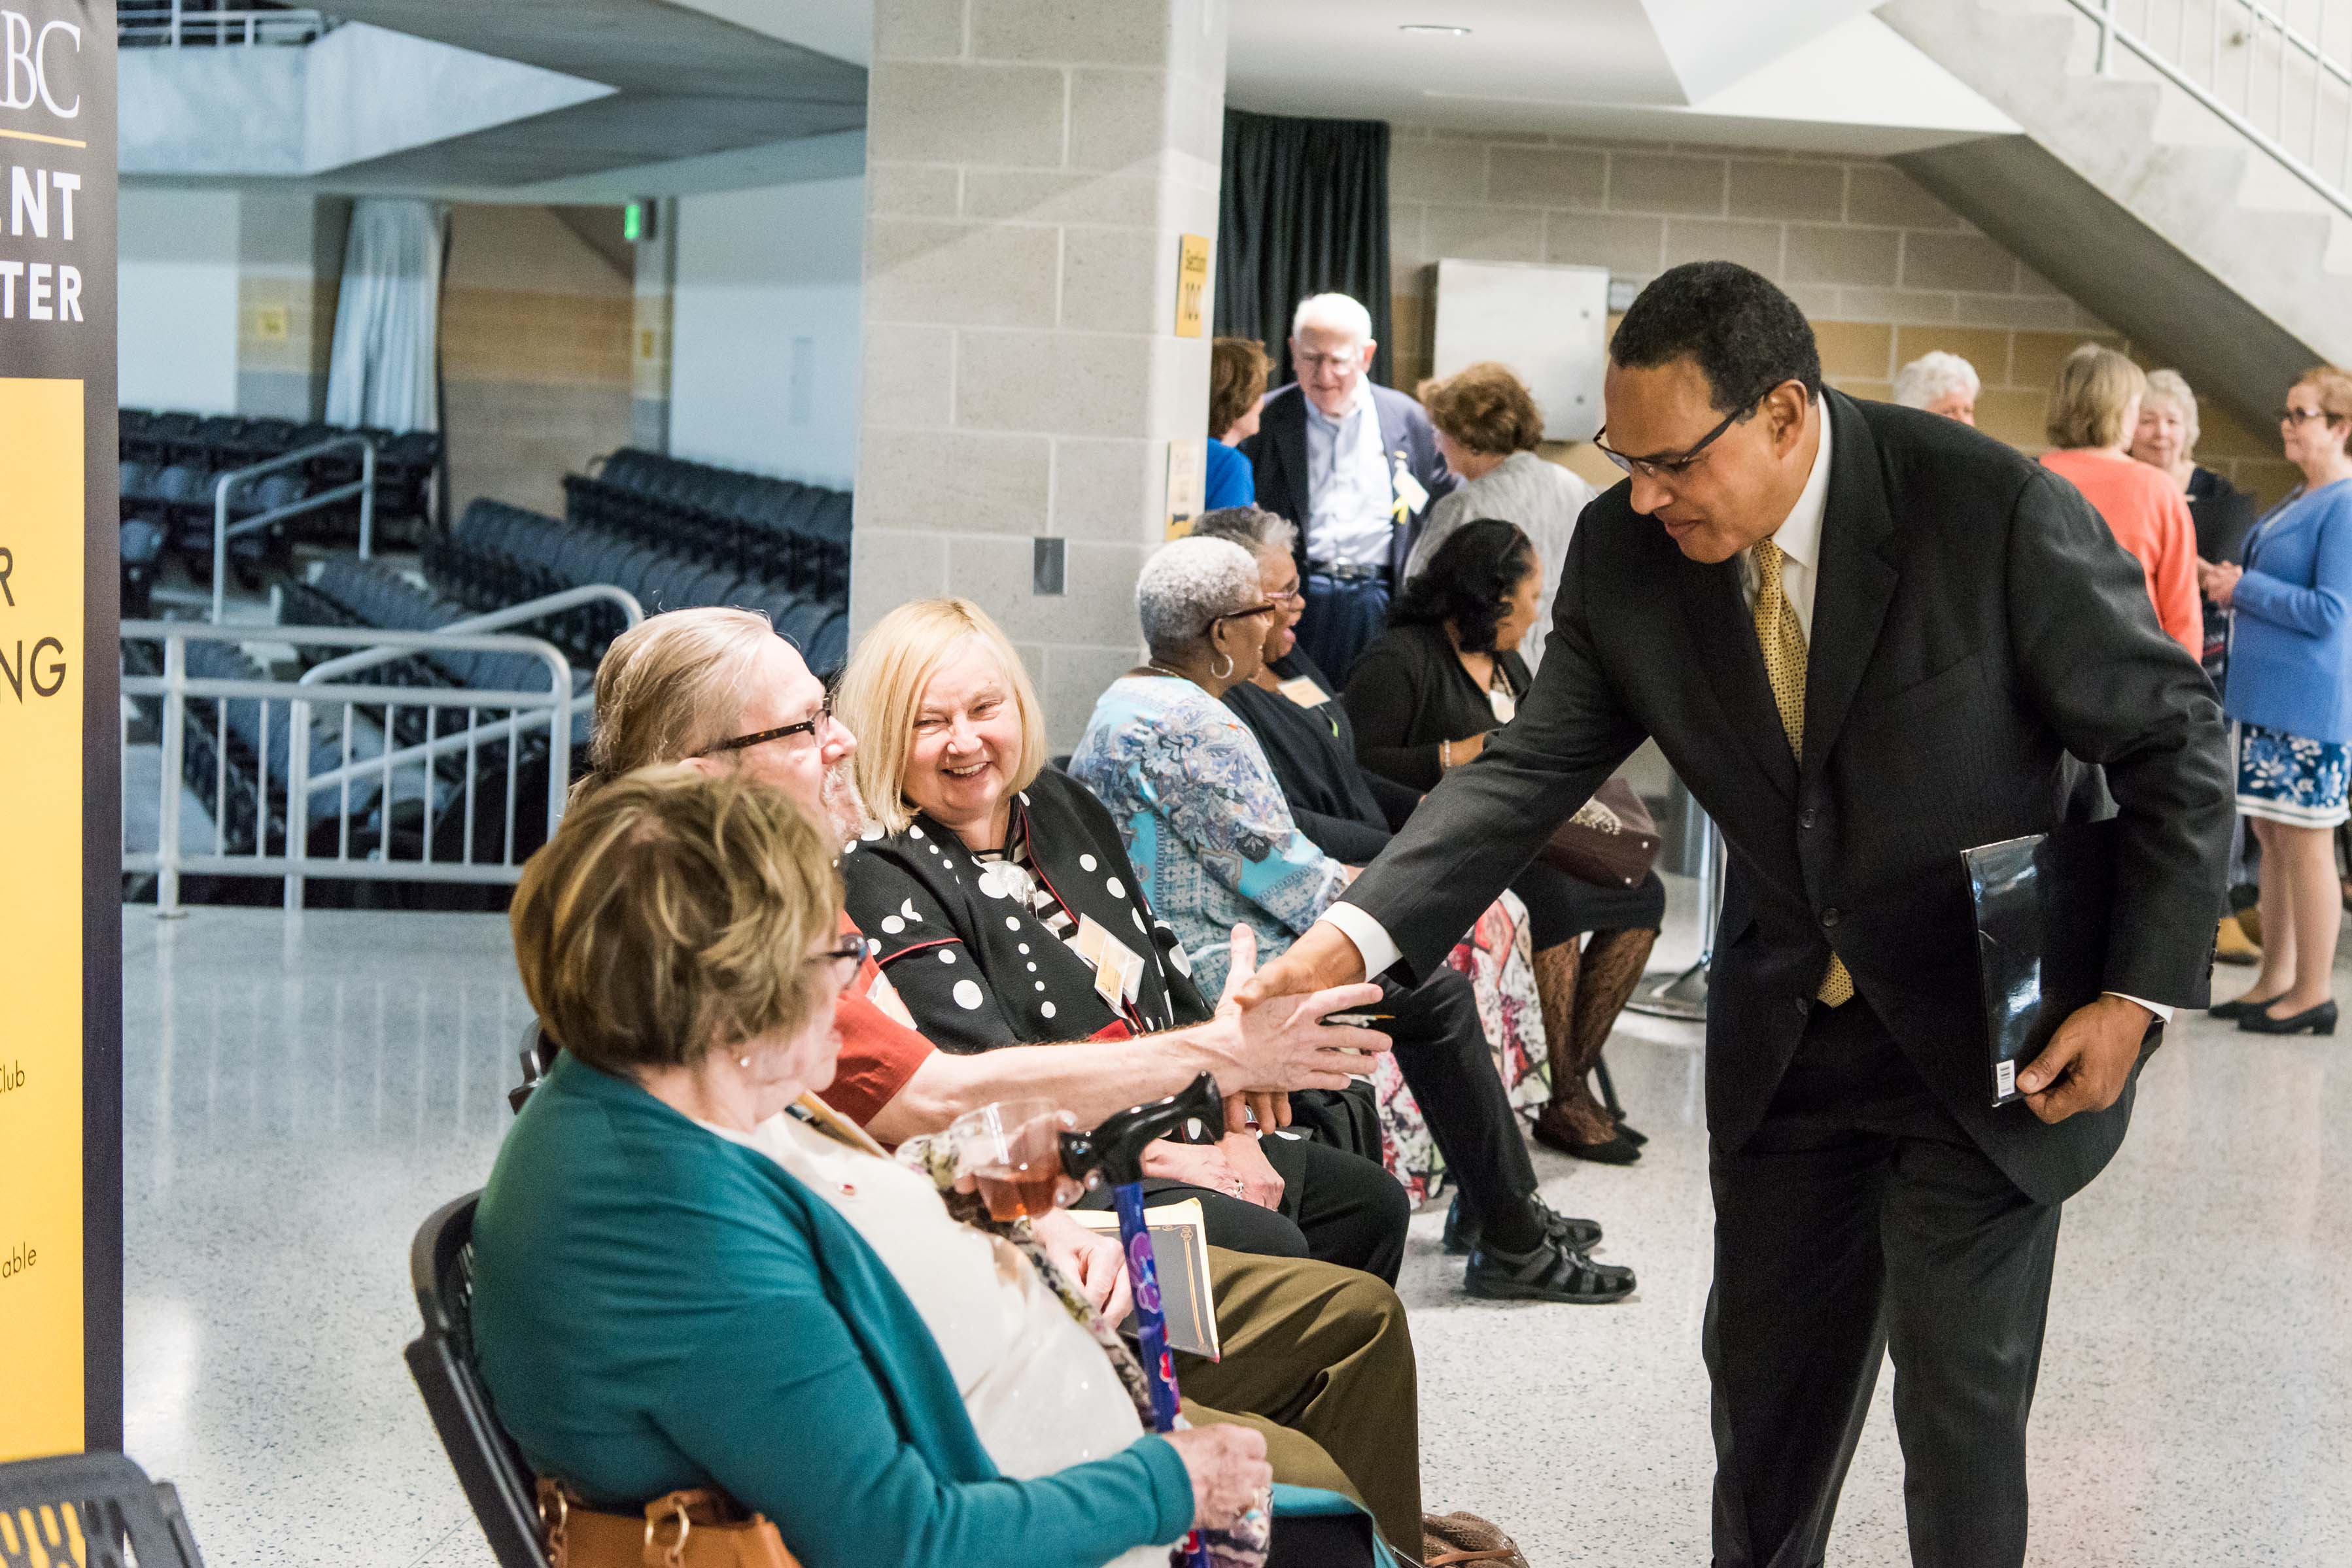 Hrabowski leans down to shake people's hands at Wisdom Institute lunch